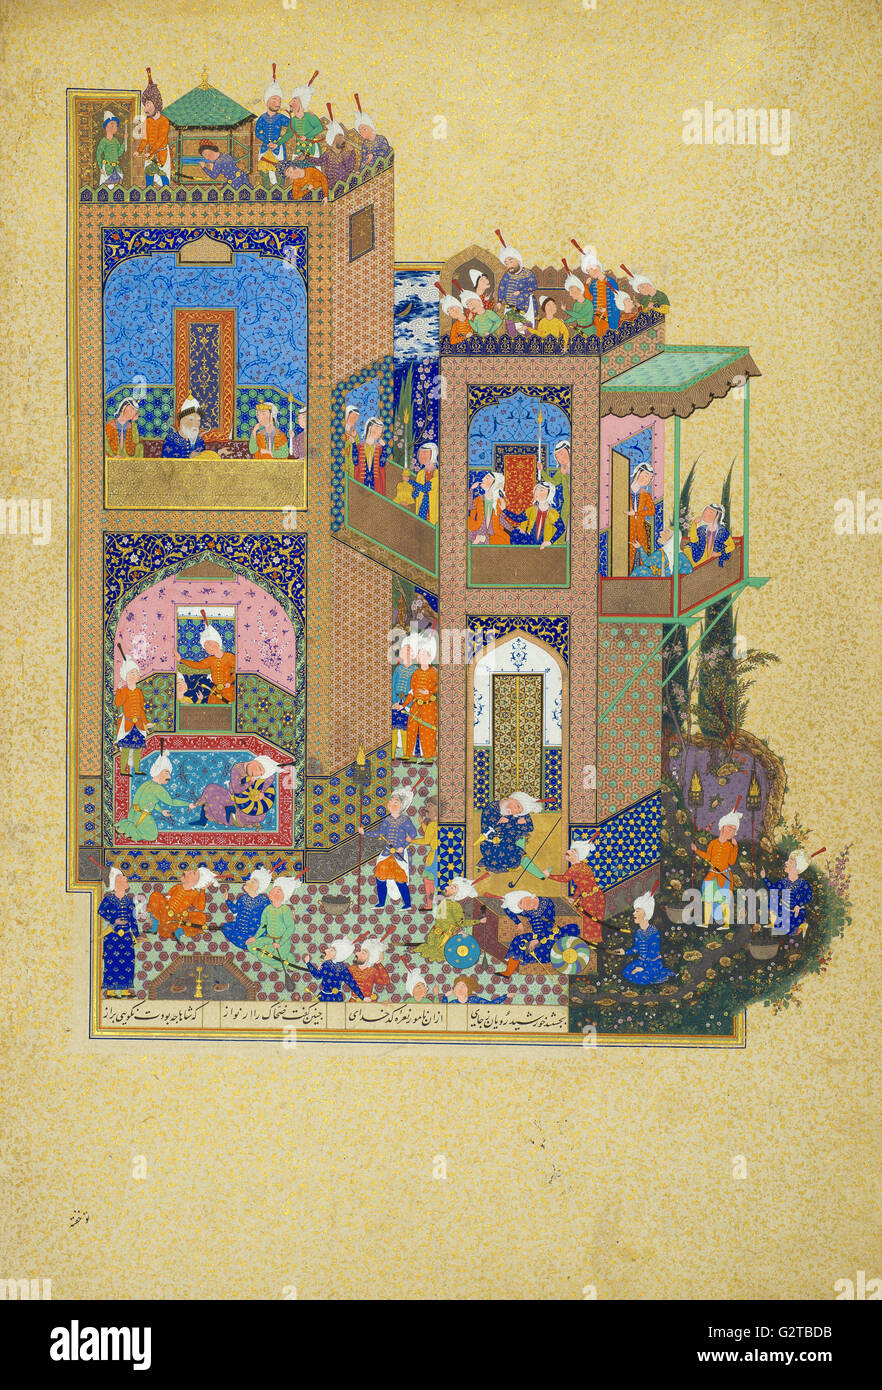 Unknown, Iran, 16th Century - Page from the Shahnama - - Stock Image